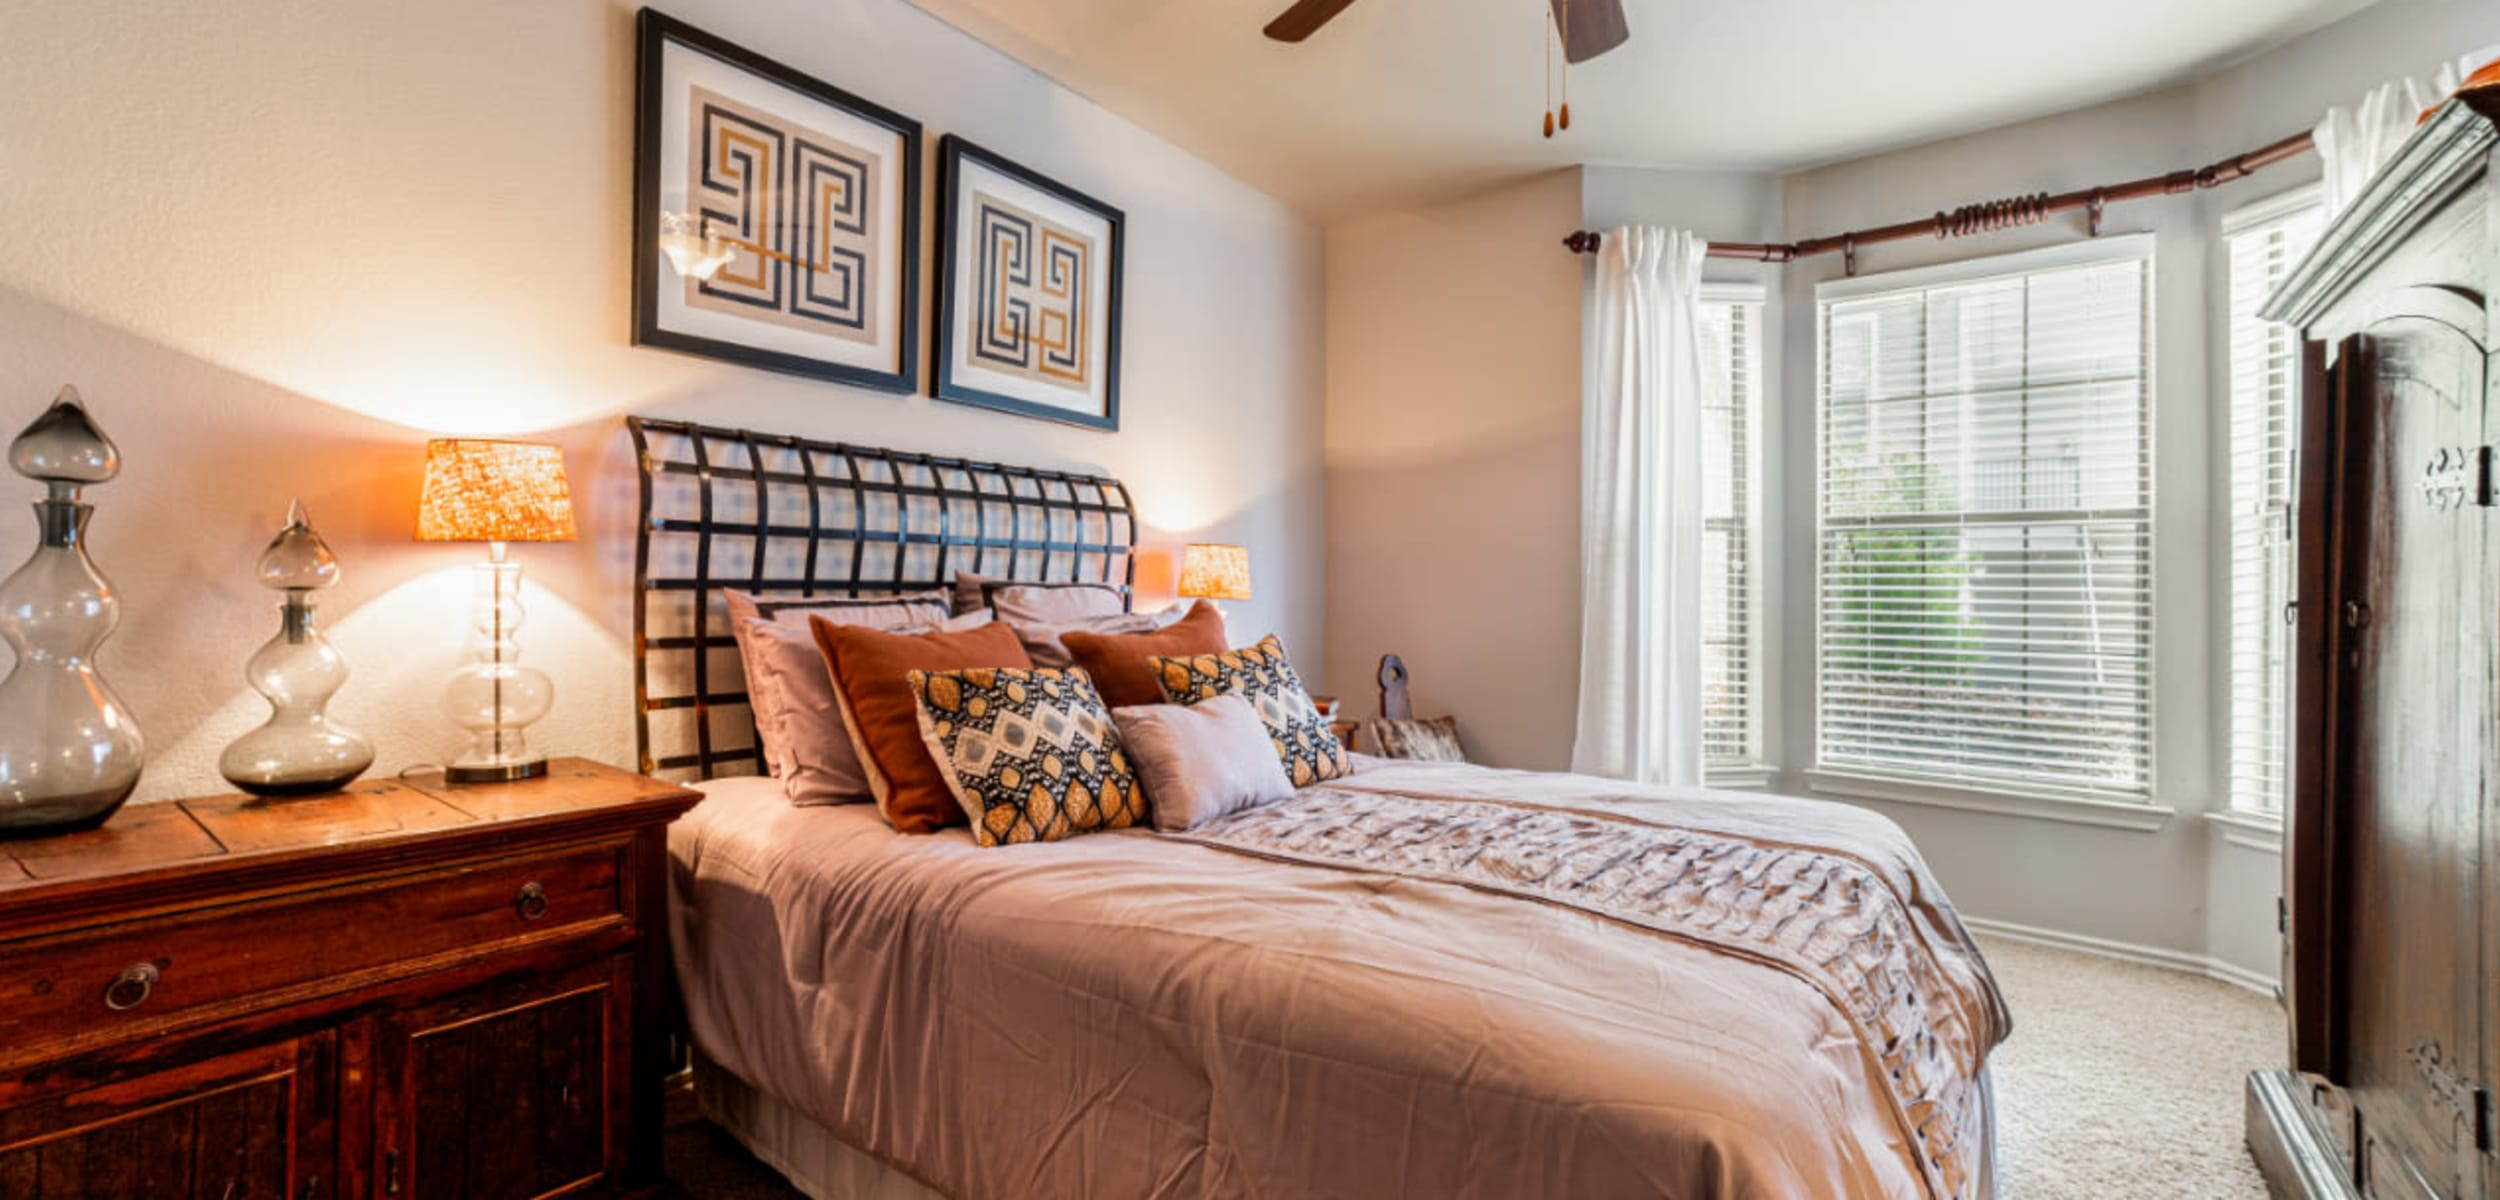 Bedroom with a large window at Marquis at Lantana in Flower Mound, Texas